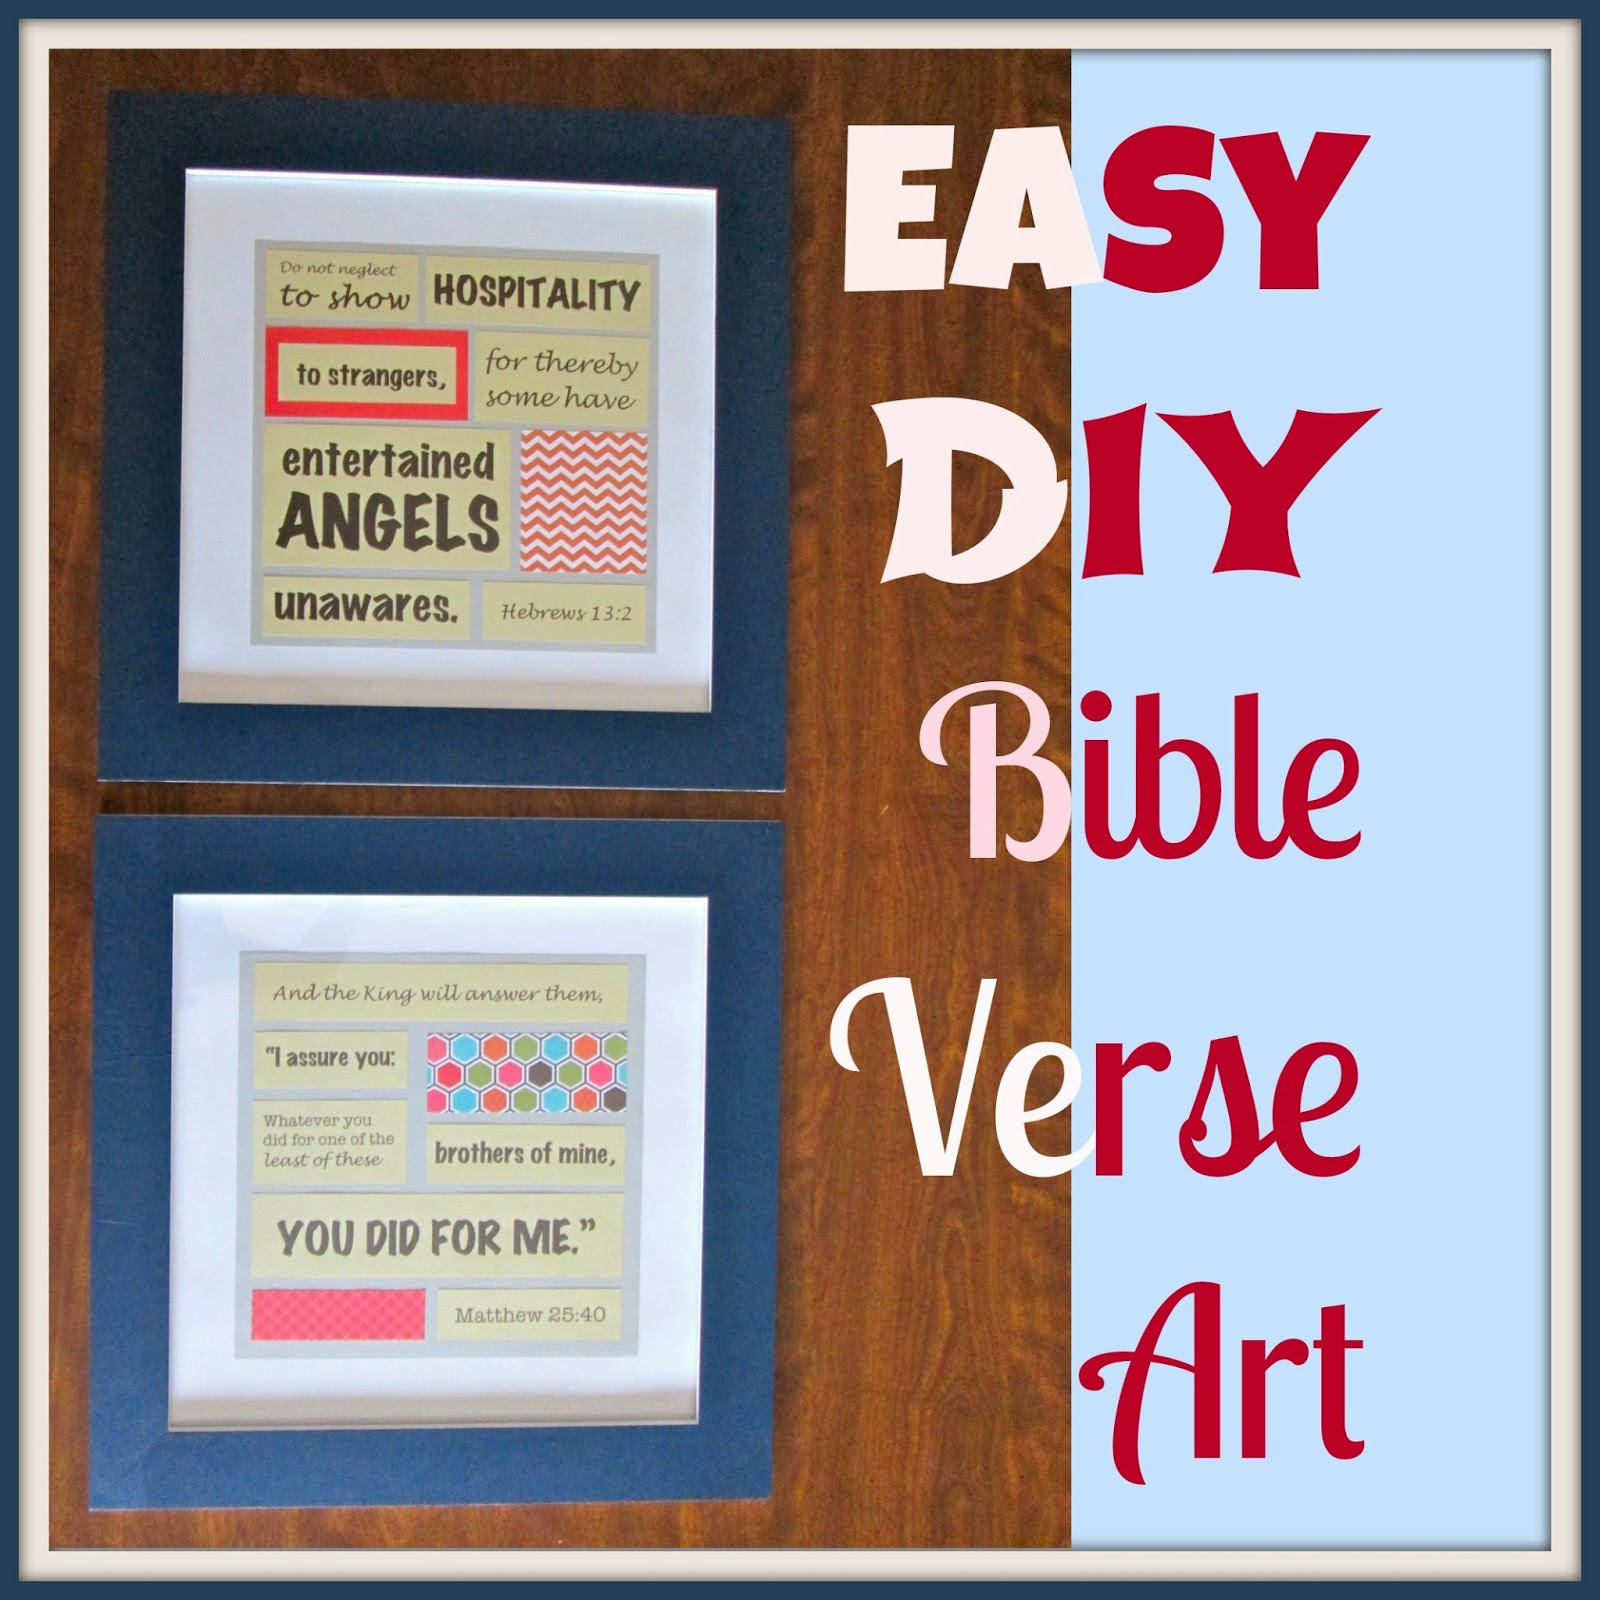 Bible Quotes For The Kitchen: Laura's Plans: Easy DIY Bible Verse Art